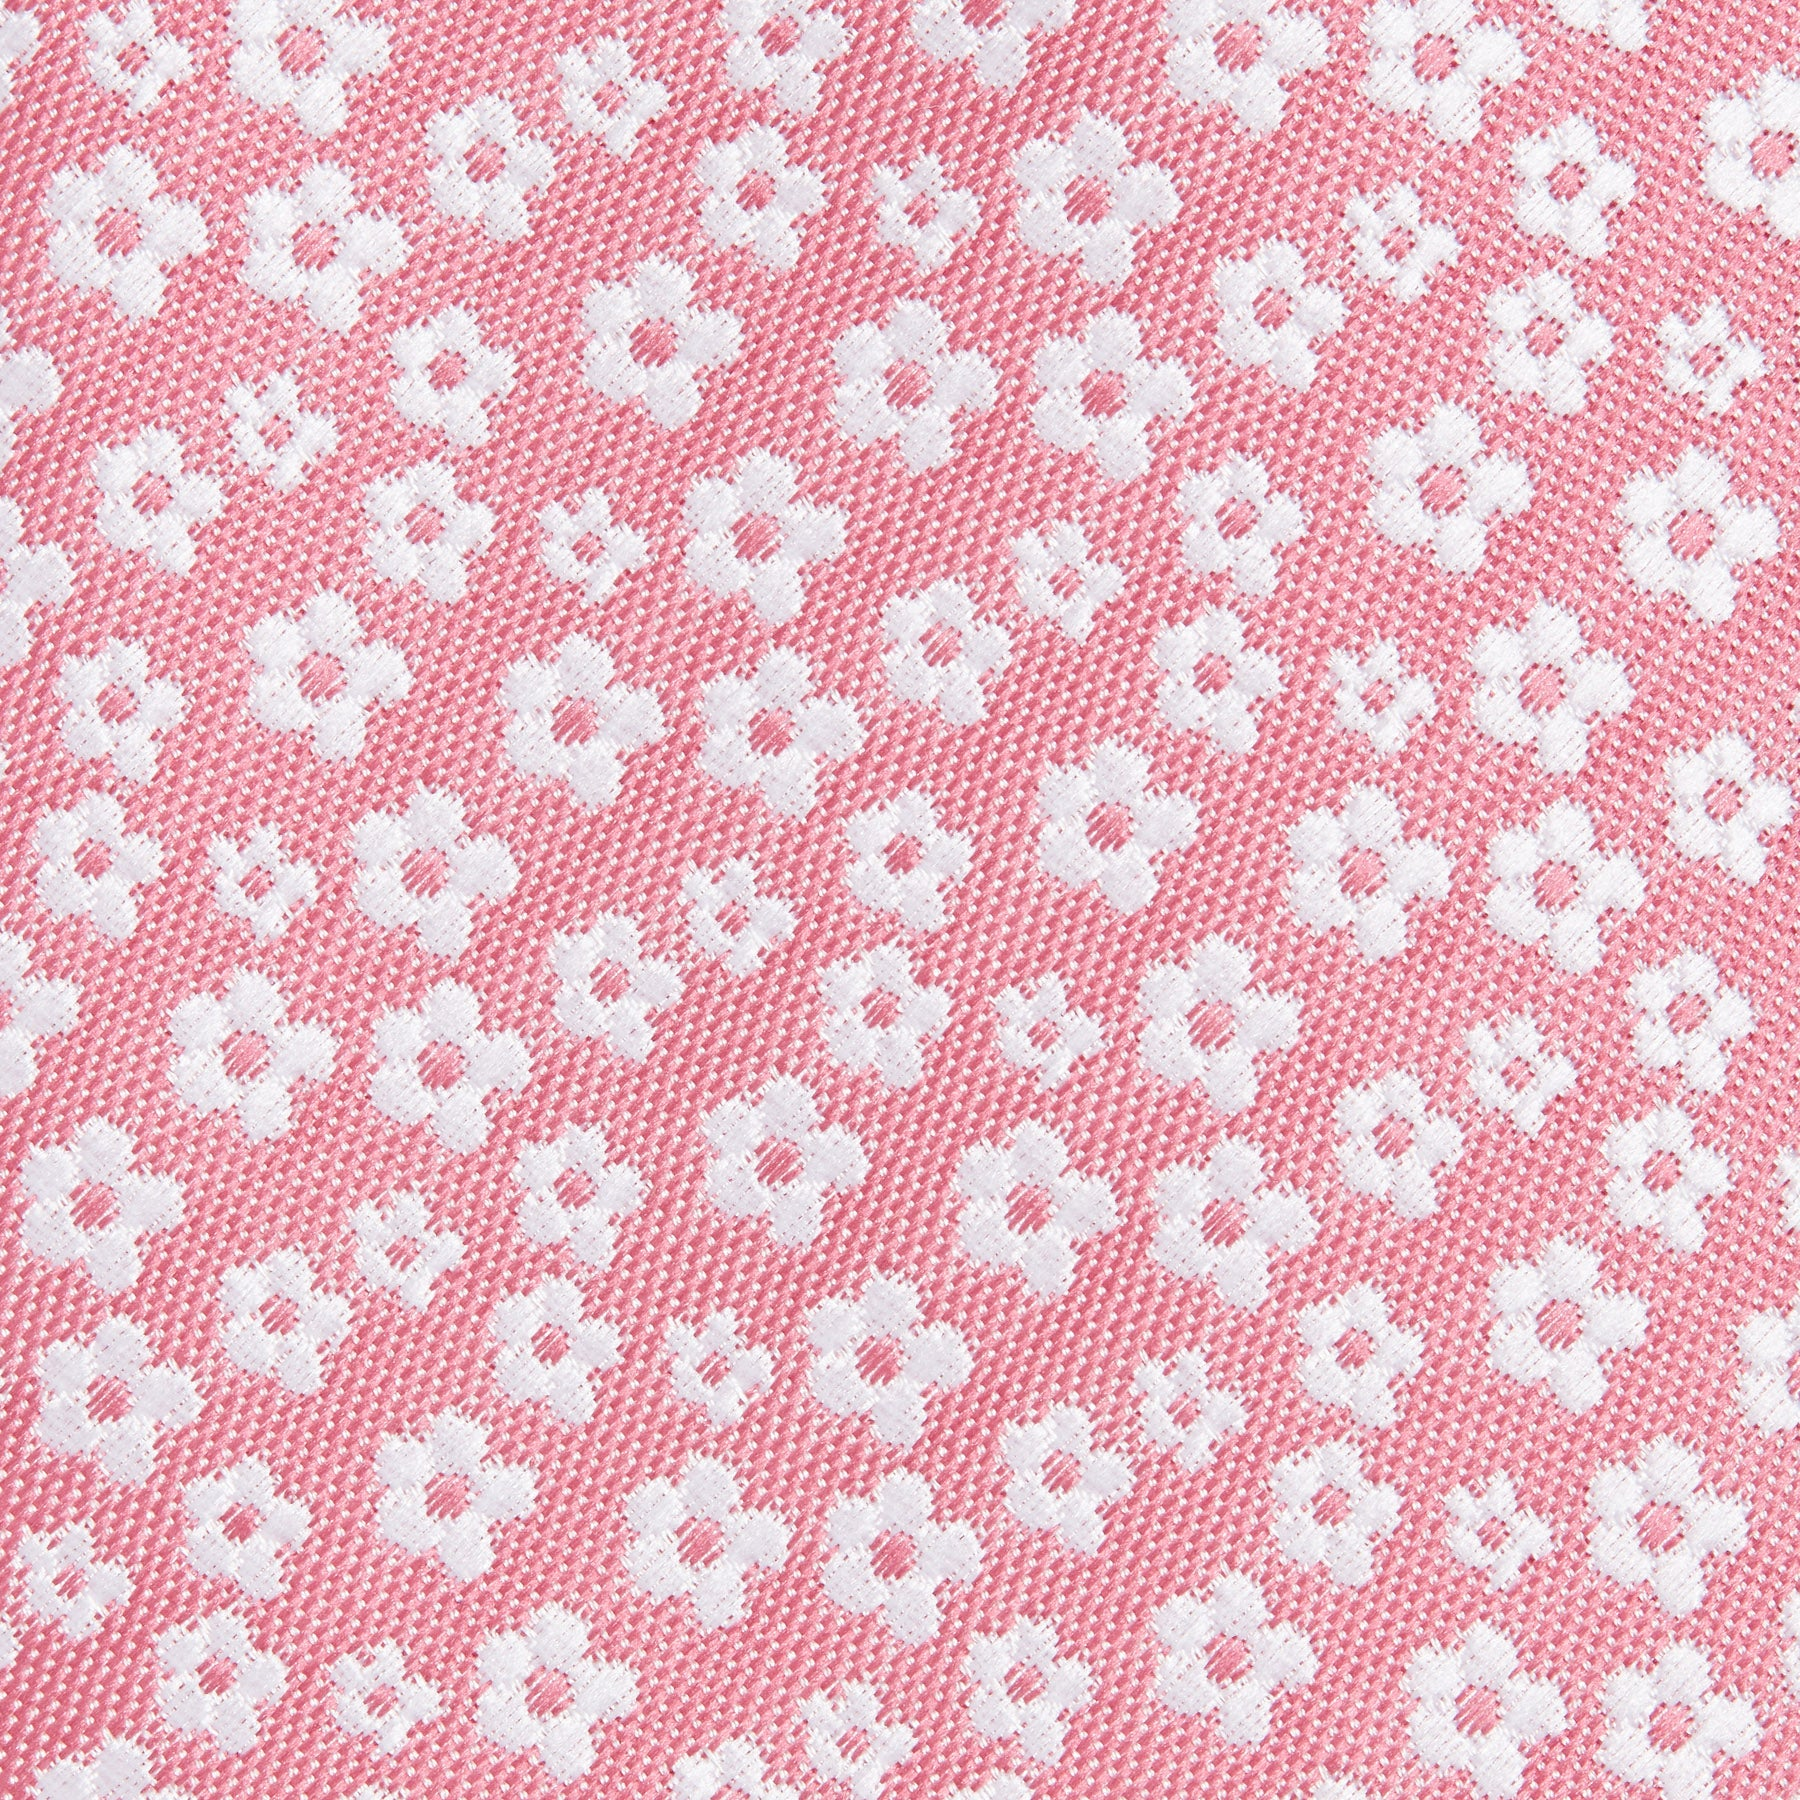 Rose Pink With White Ditsy Flower Pattern Slim Tie Fabric